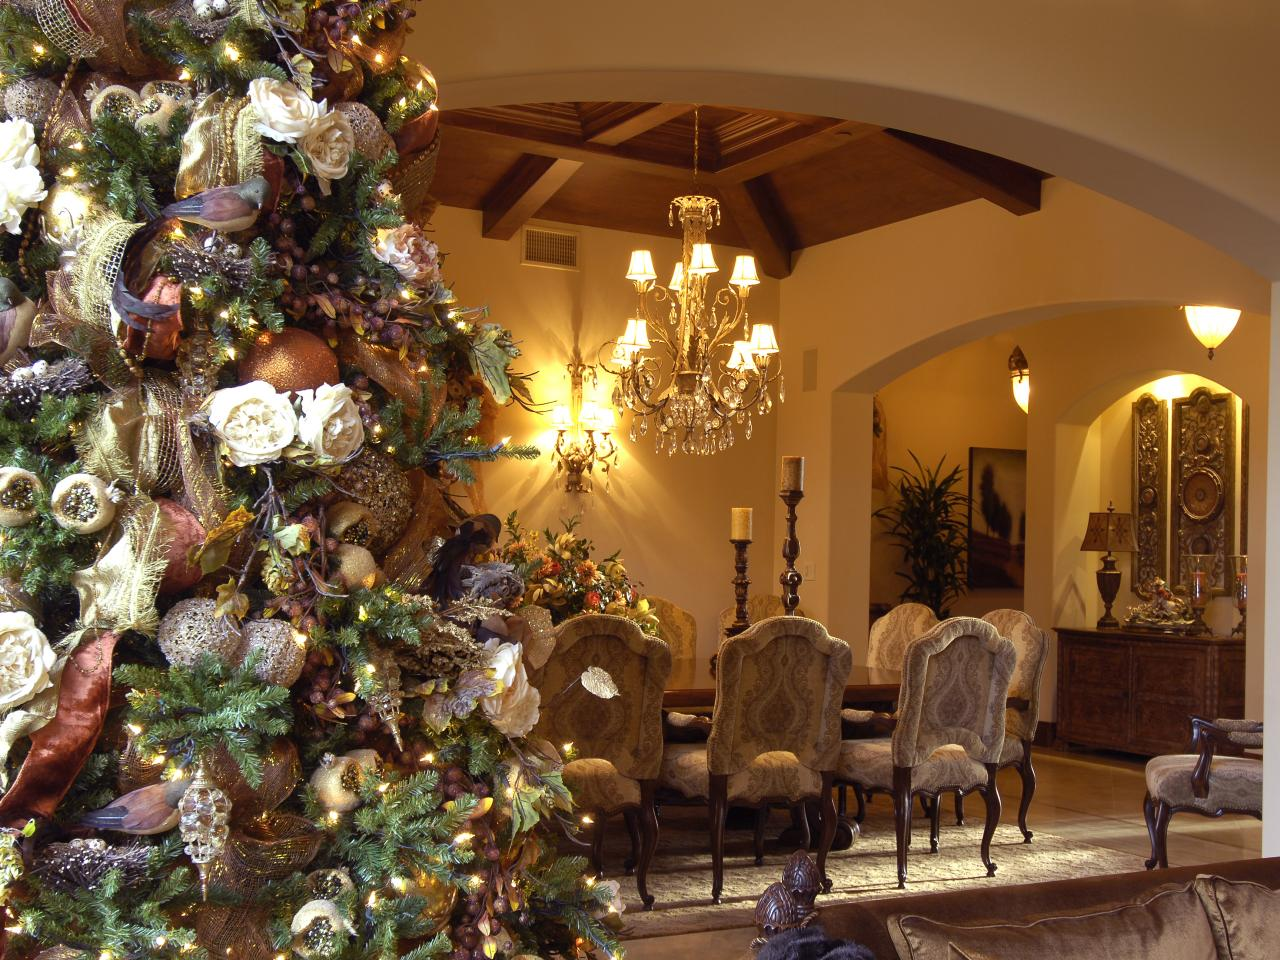 Christmas tree decorating ideas interior design styles Christmas decorations interior design